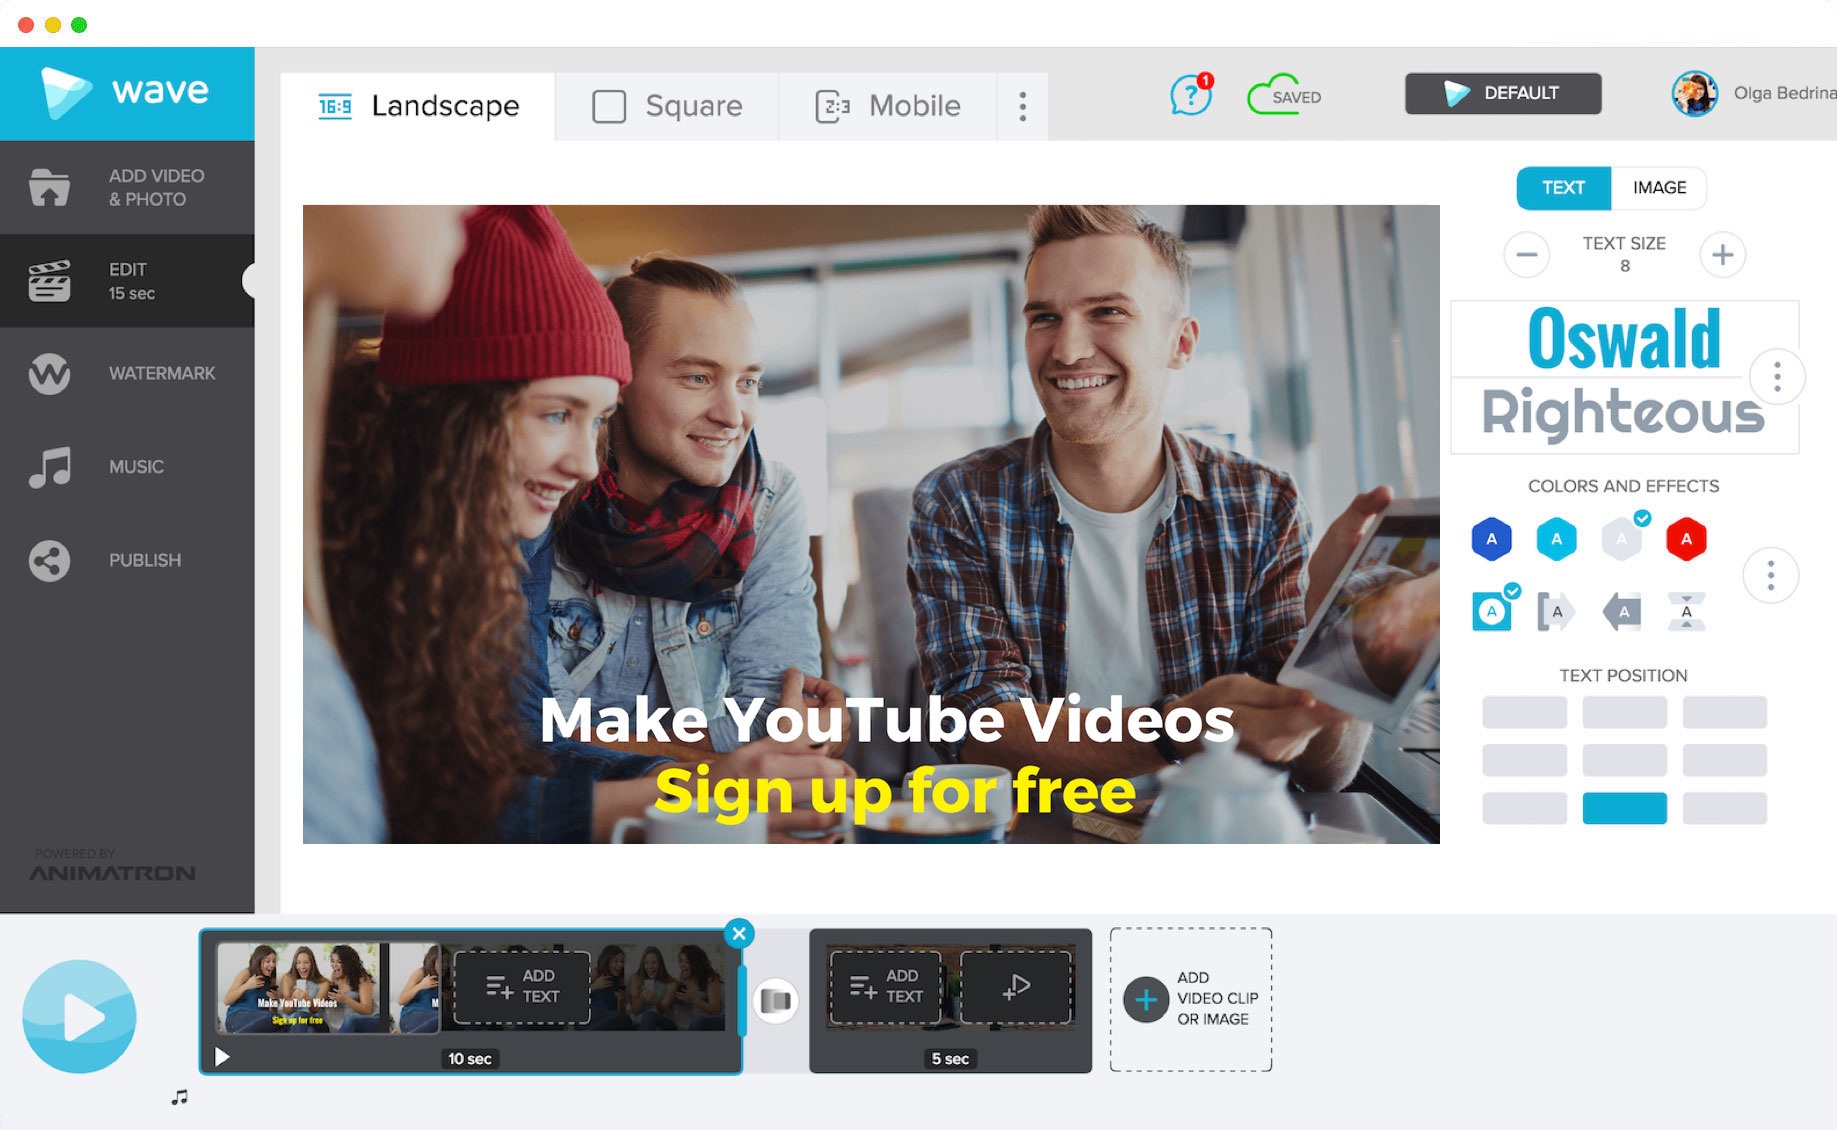 Learn how to make YouTube videos easily with Wave.video